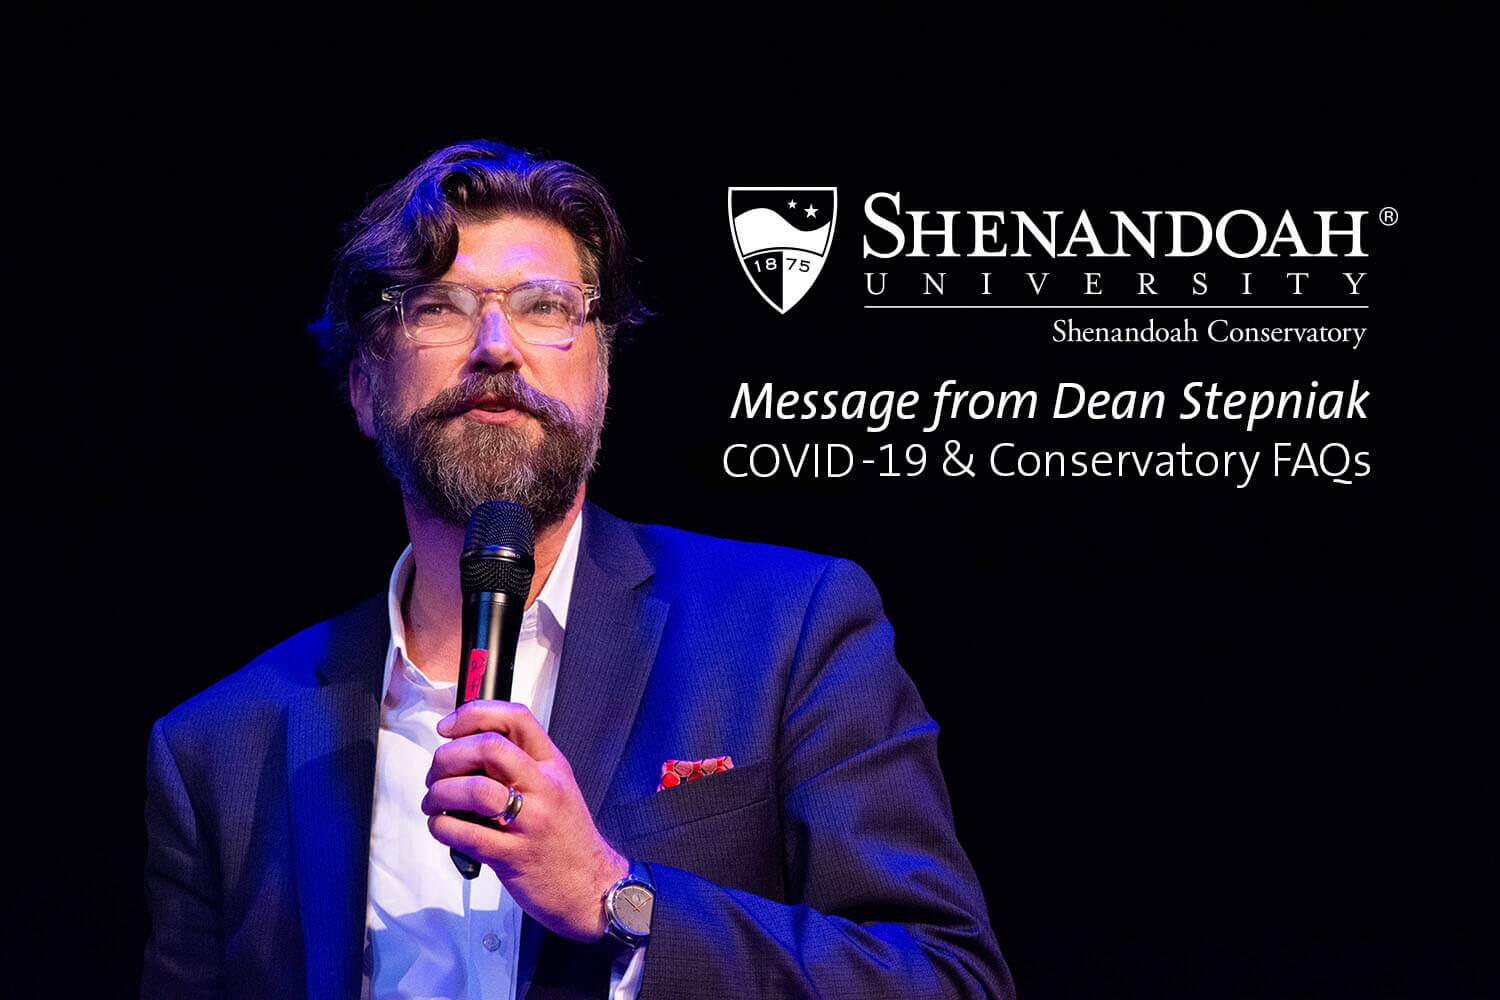 Message to Conservatory Students on COVID-19 from Dean Stepniak How am I going to take my conservatory classes online?